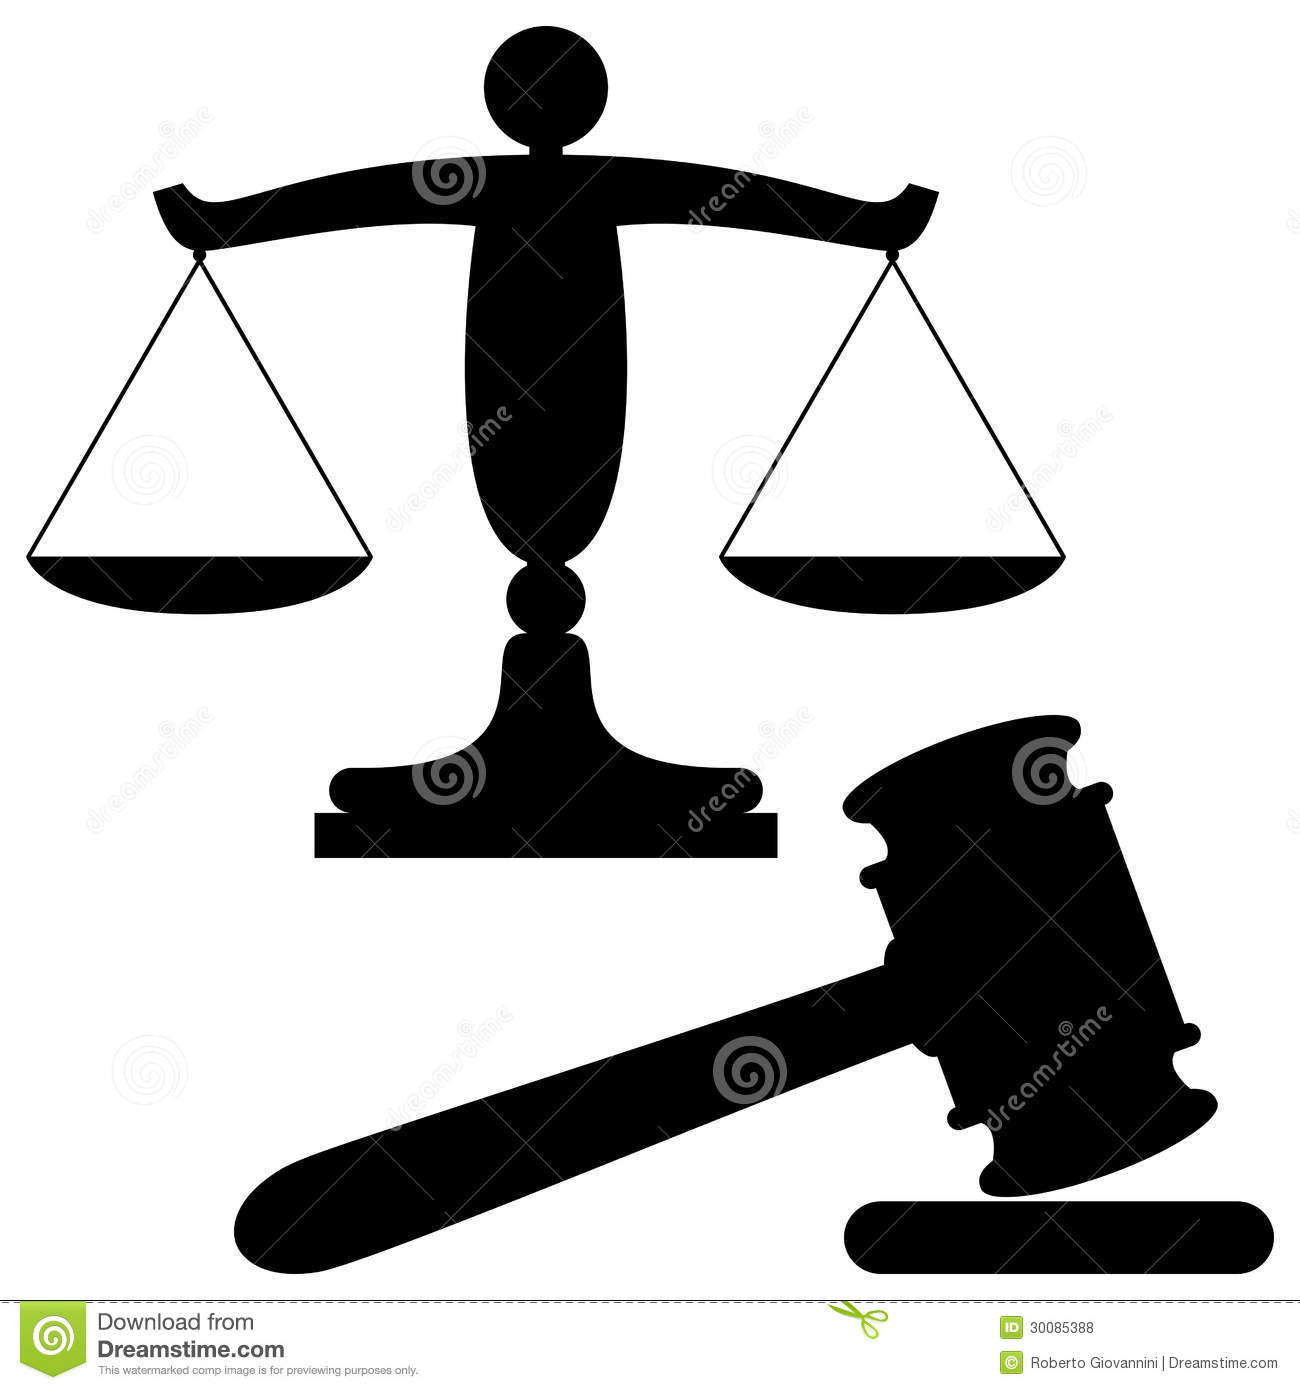 scales justice stock illustrations 5 301 scales justice stock rh dreamstime com clipart justice scales free scale of justice clip art free